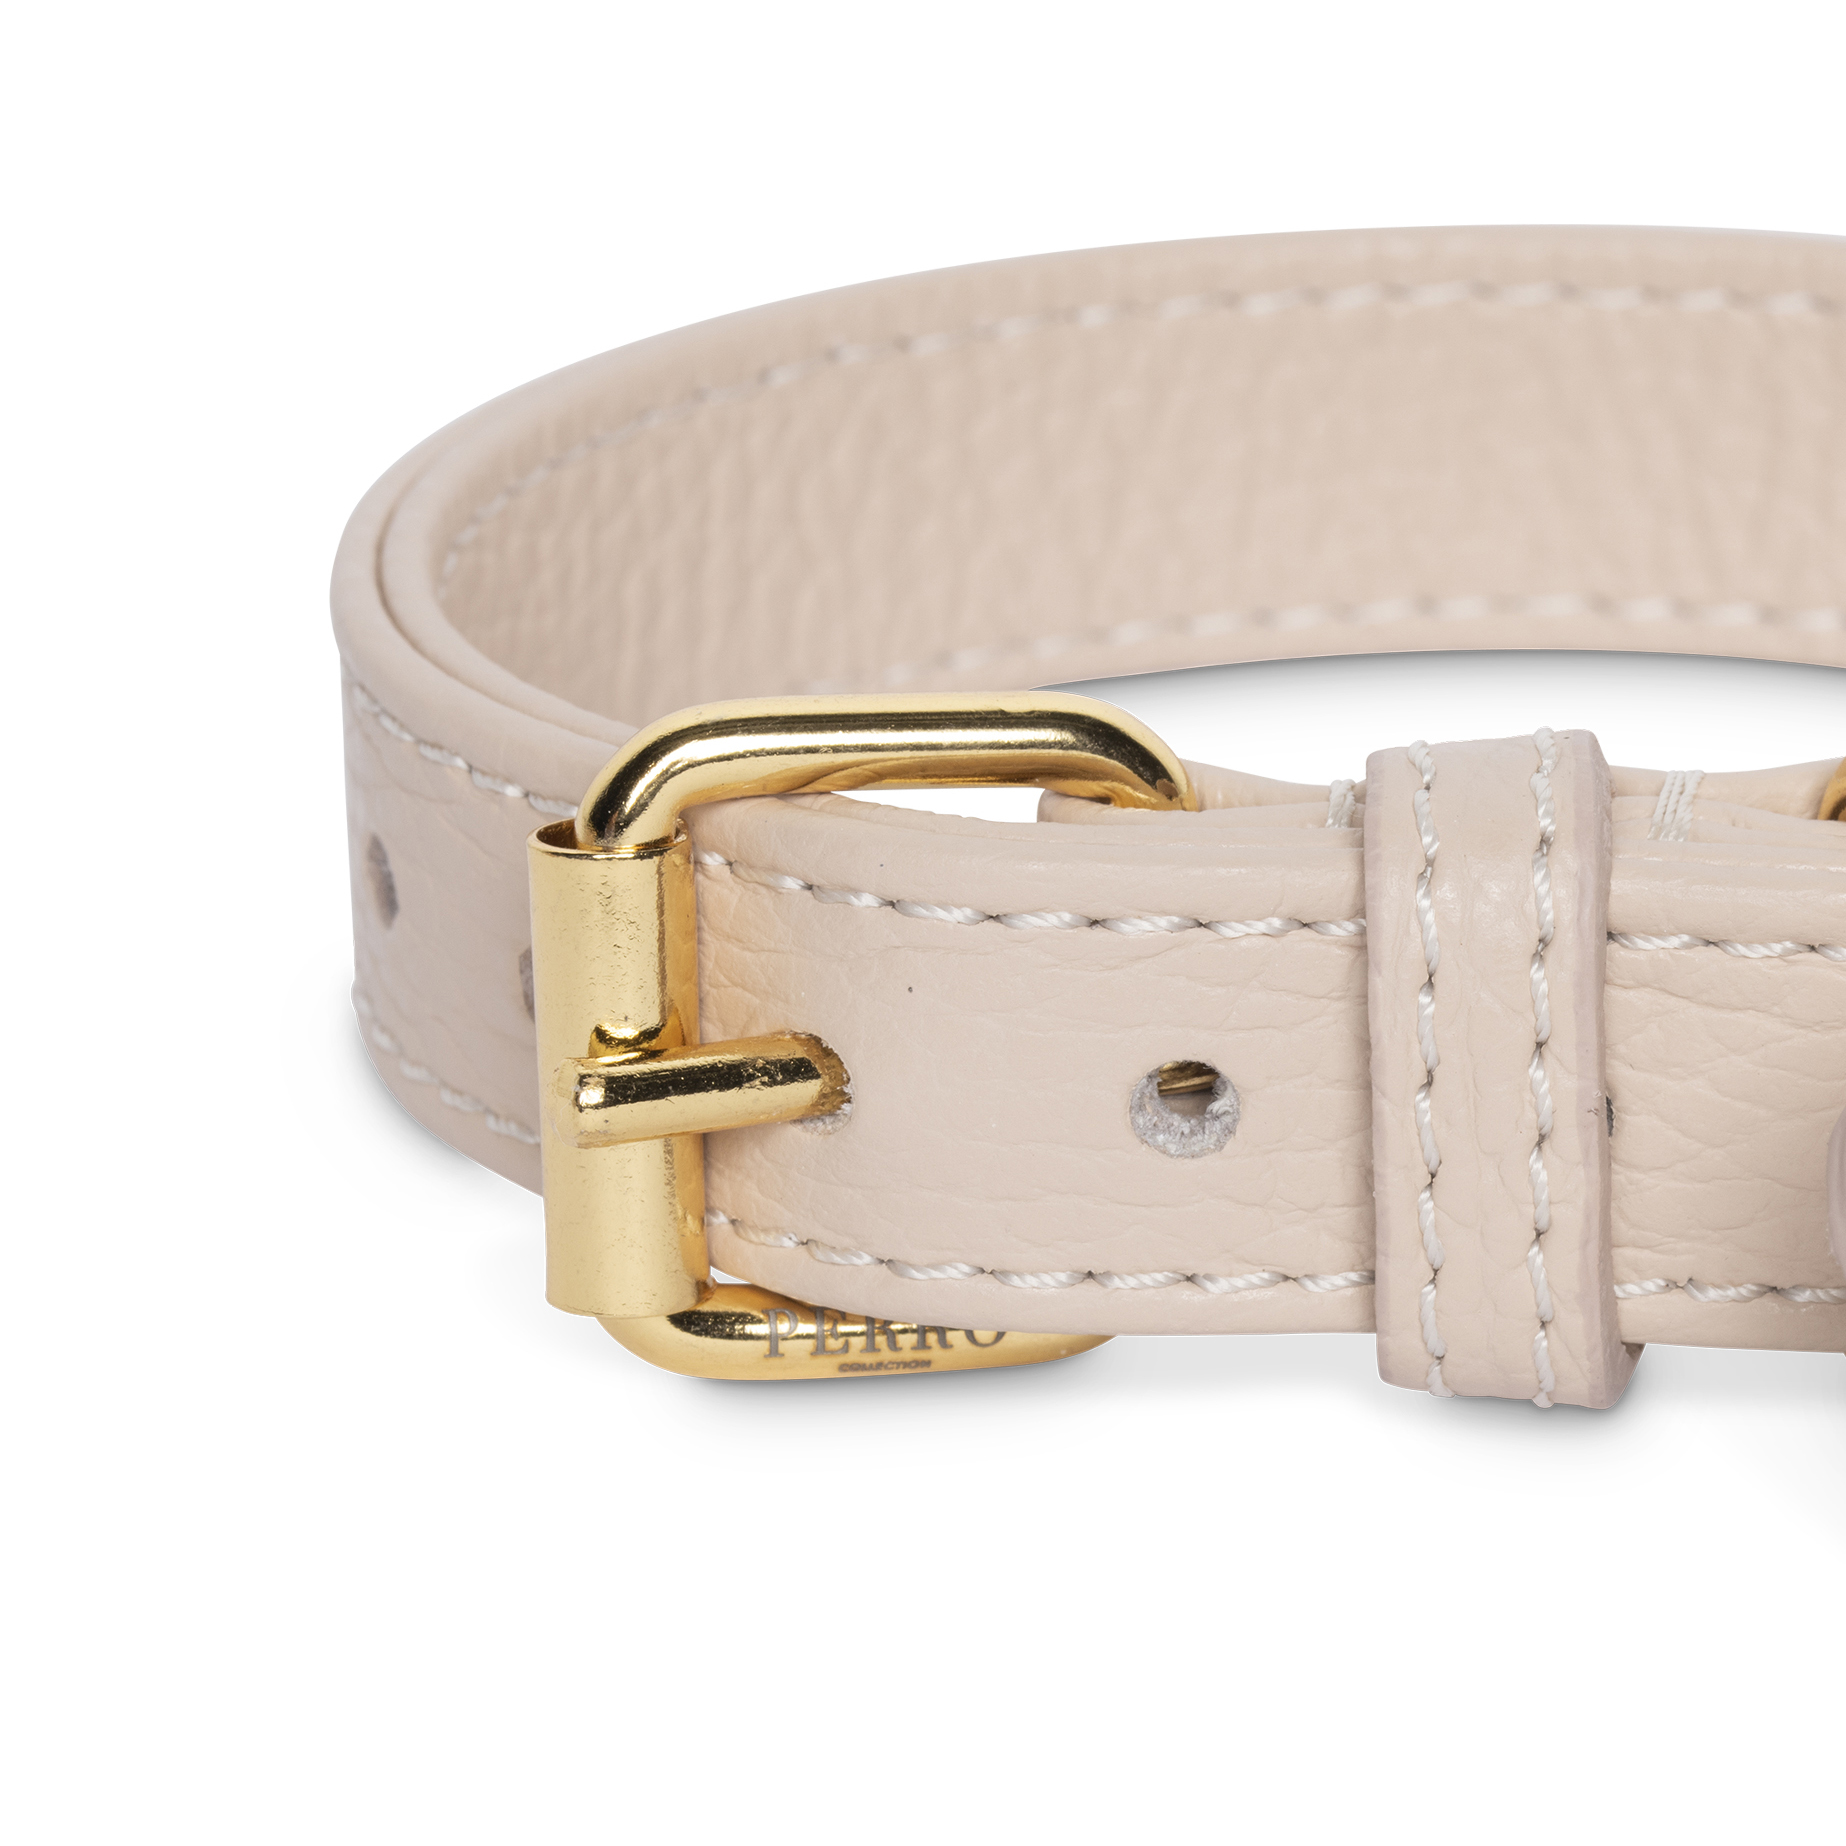 Dusty pink collar close up